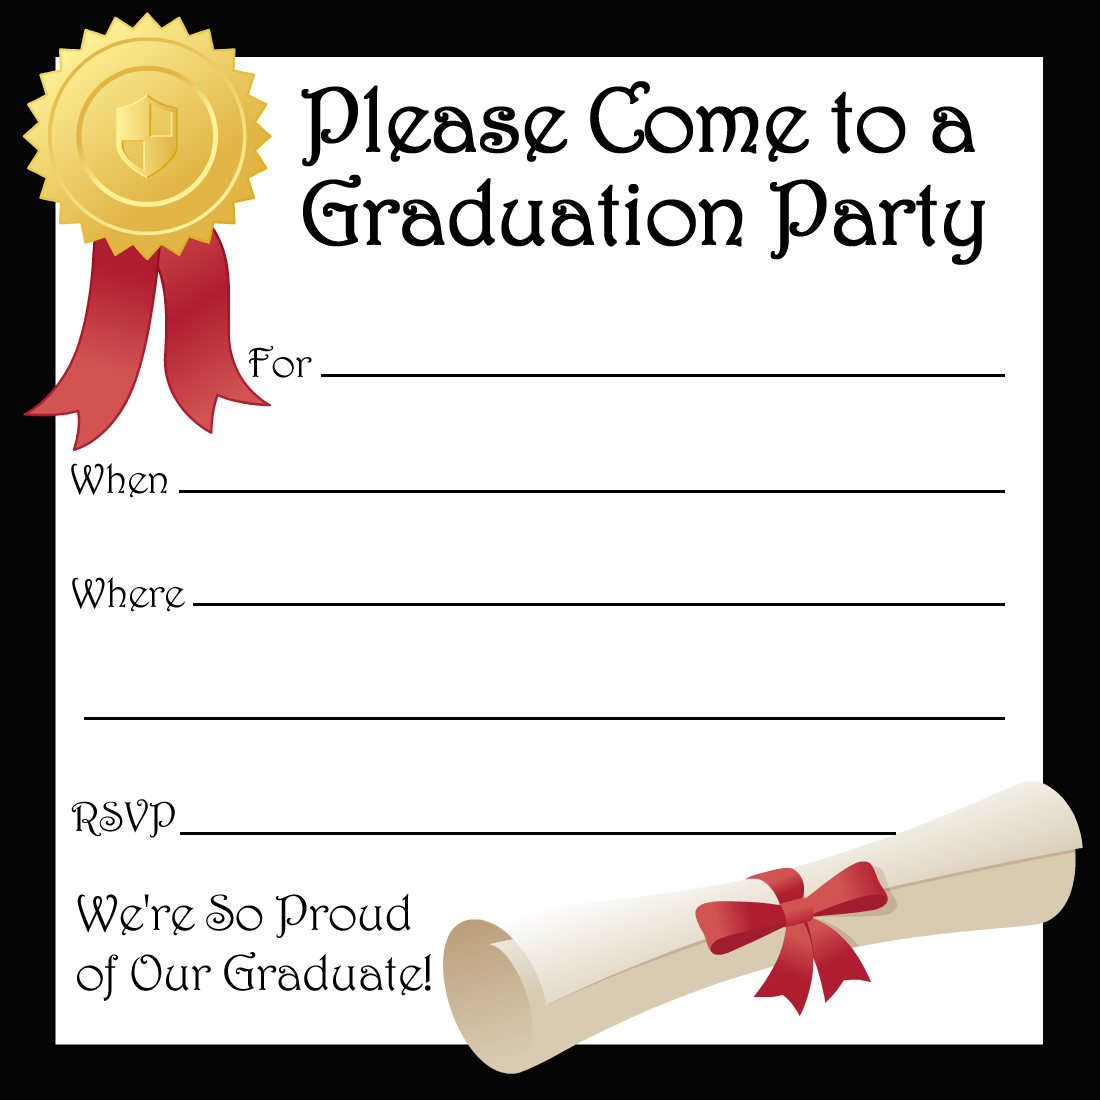 Free Printable Graduation Party Invitations | High School Graduation - Free Printable Graduation Party Invitations